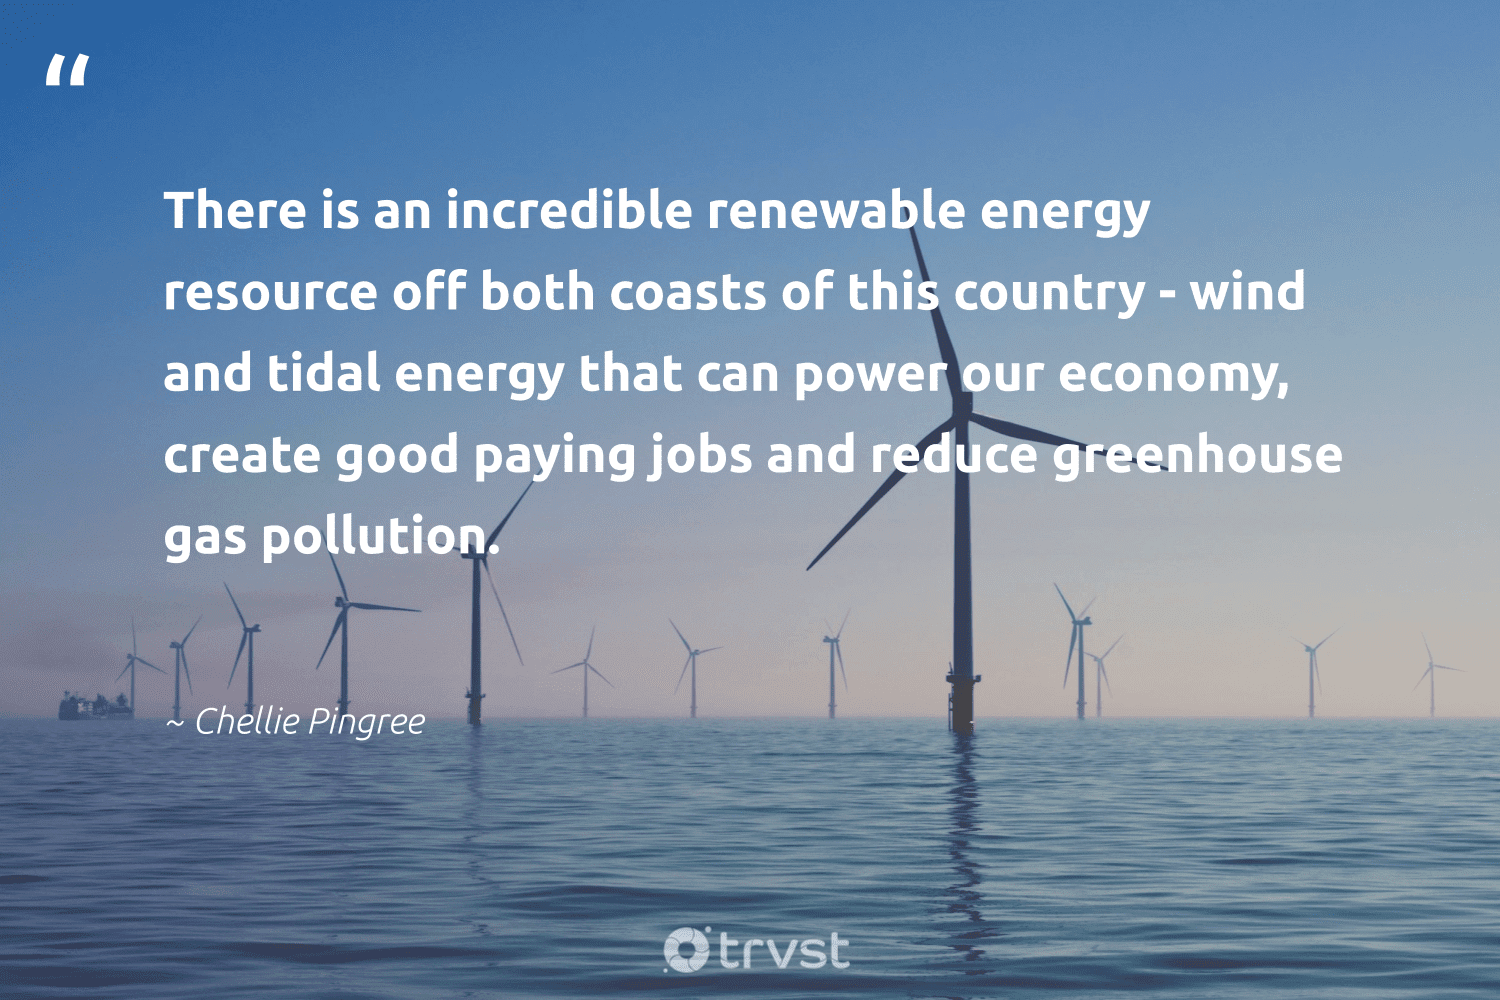 """""""There is an incredible renewable energy resource off both coasts of this country - wind and tidal energy that can power our economy, create good paying jobs and reduce greenhouse gas pollution.""""  - Chellie Pingree #trvst #quotes #renewableenergy #reduce #energy #renewable #gas #pollution #lowcarbon #reducereuserecycle #nature #sustainability"""